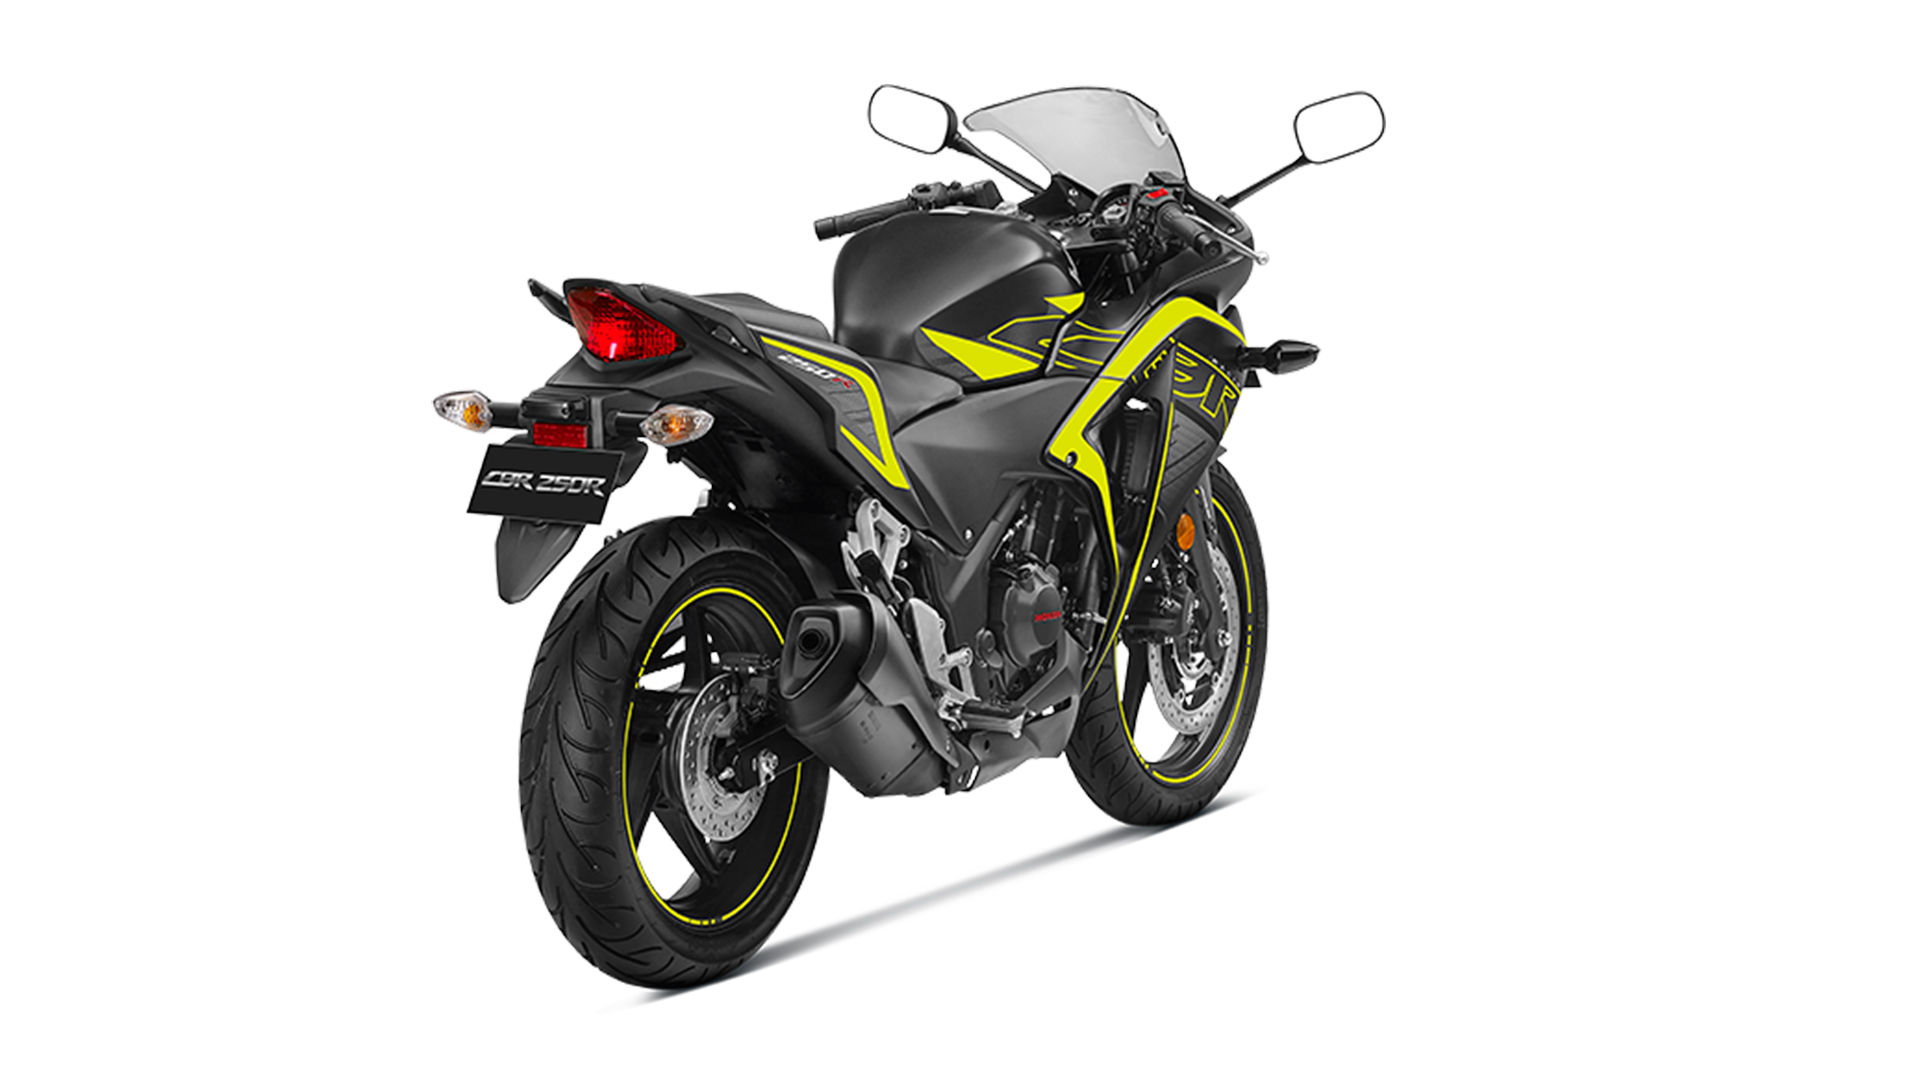 Honda Cbr250r 2018 Price Mileage Reviews Specification Gallery Overdrive